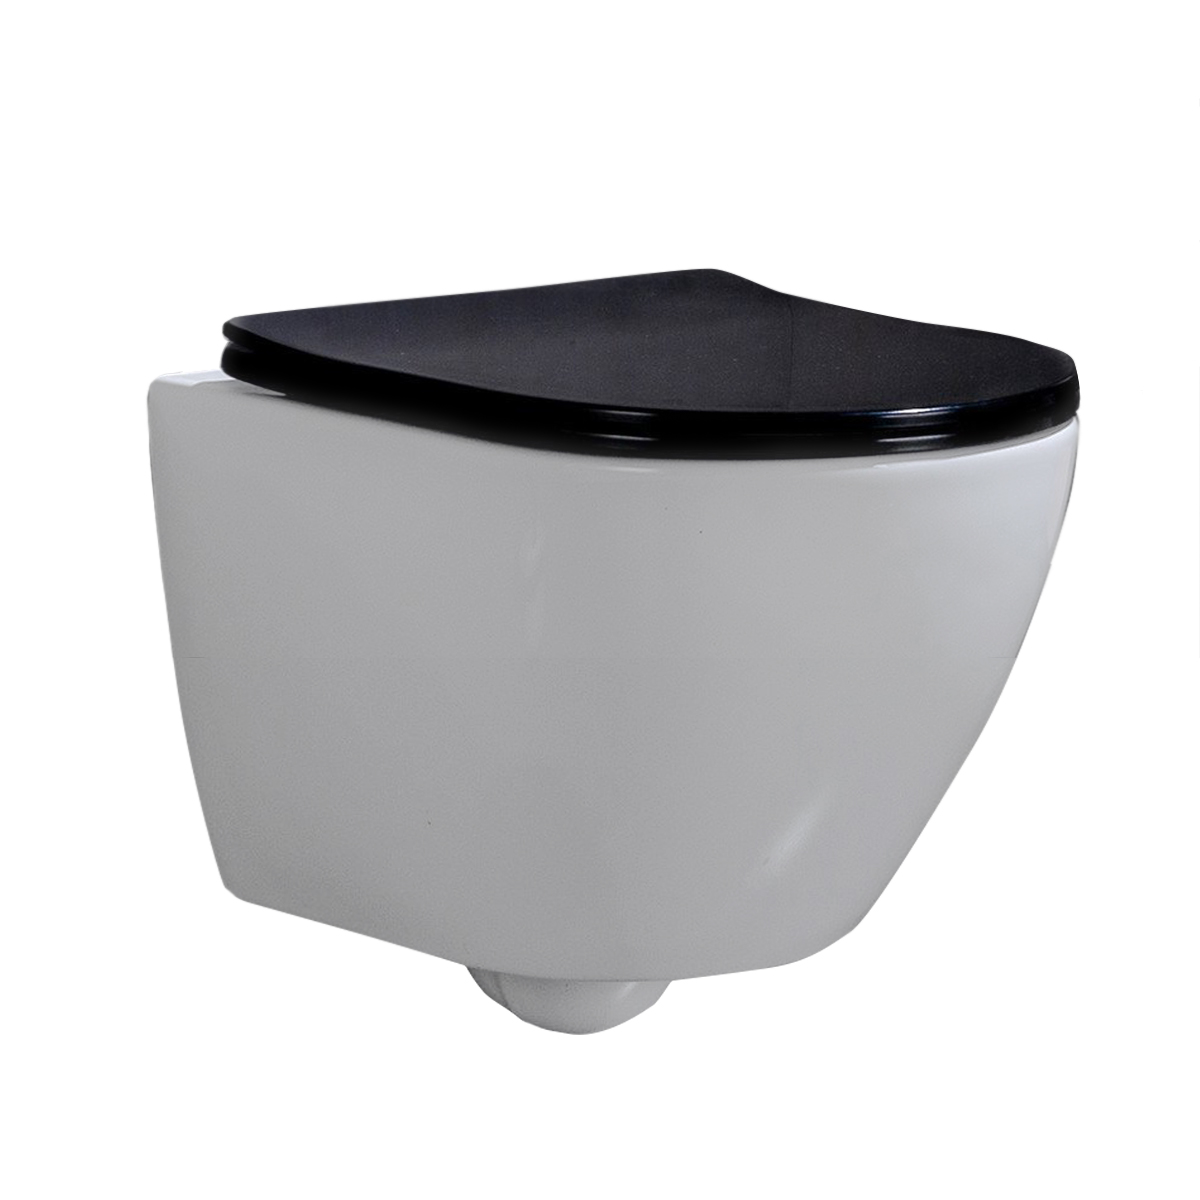 Wandcloset - Hangend Toilet Shorty Flatline Zwart - Inbouwtoilet Rimfree WC Pot